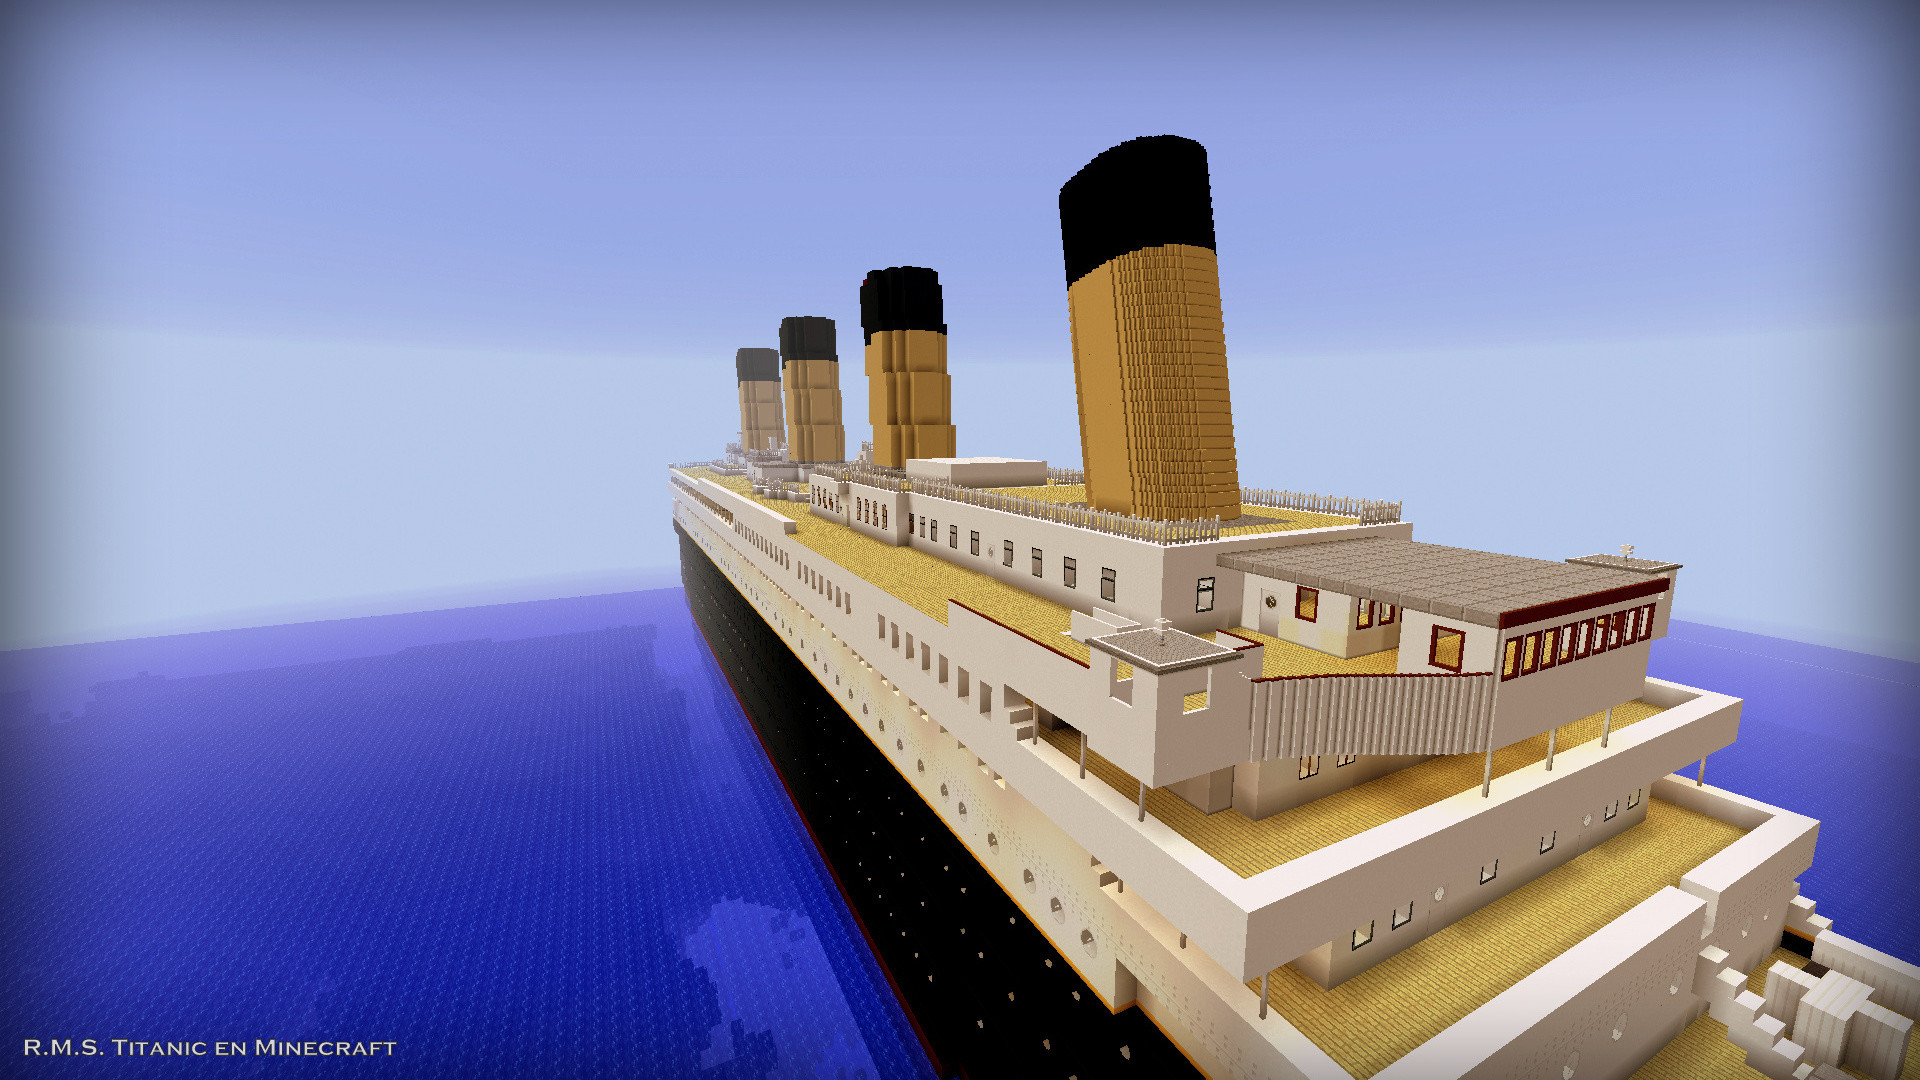 1920x1080 R.M.S. Titanic in Minecraft: New Webpage Design (12/11/2016) - Creative  Mode - Minecraft: Java Edition - Minecraft Forum - Minecraft Forum